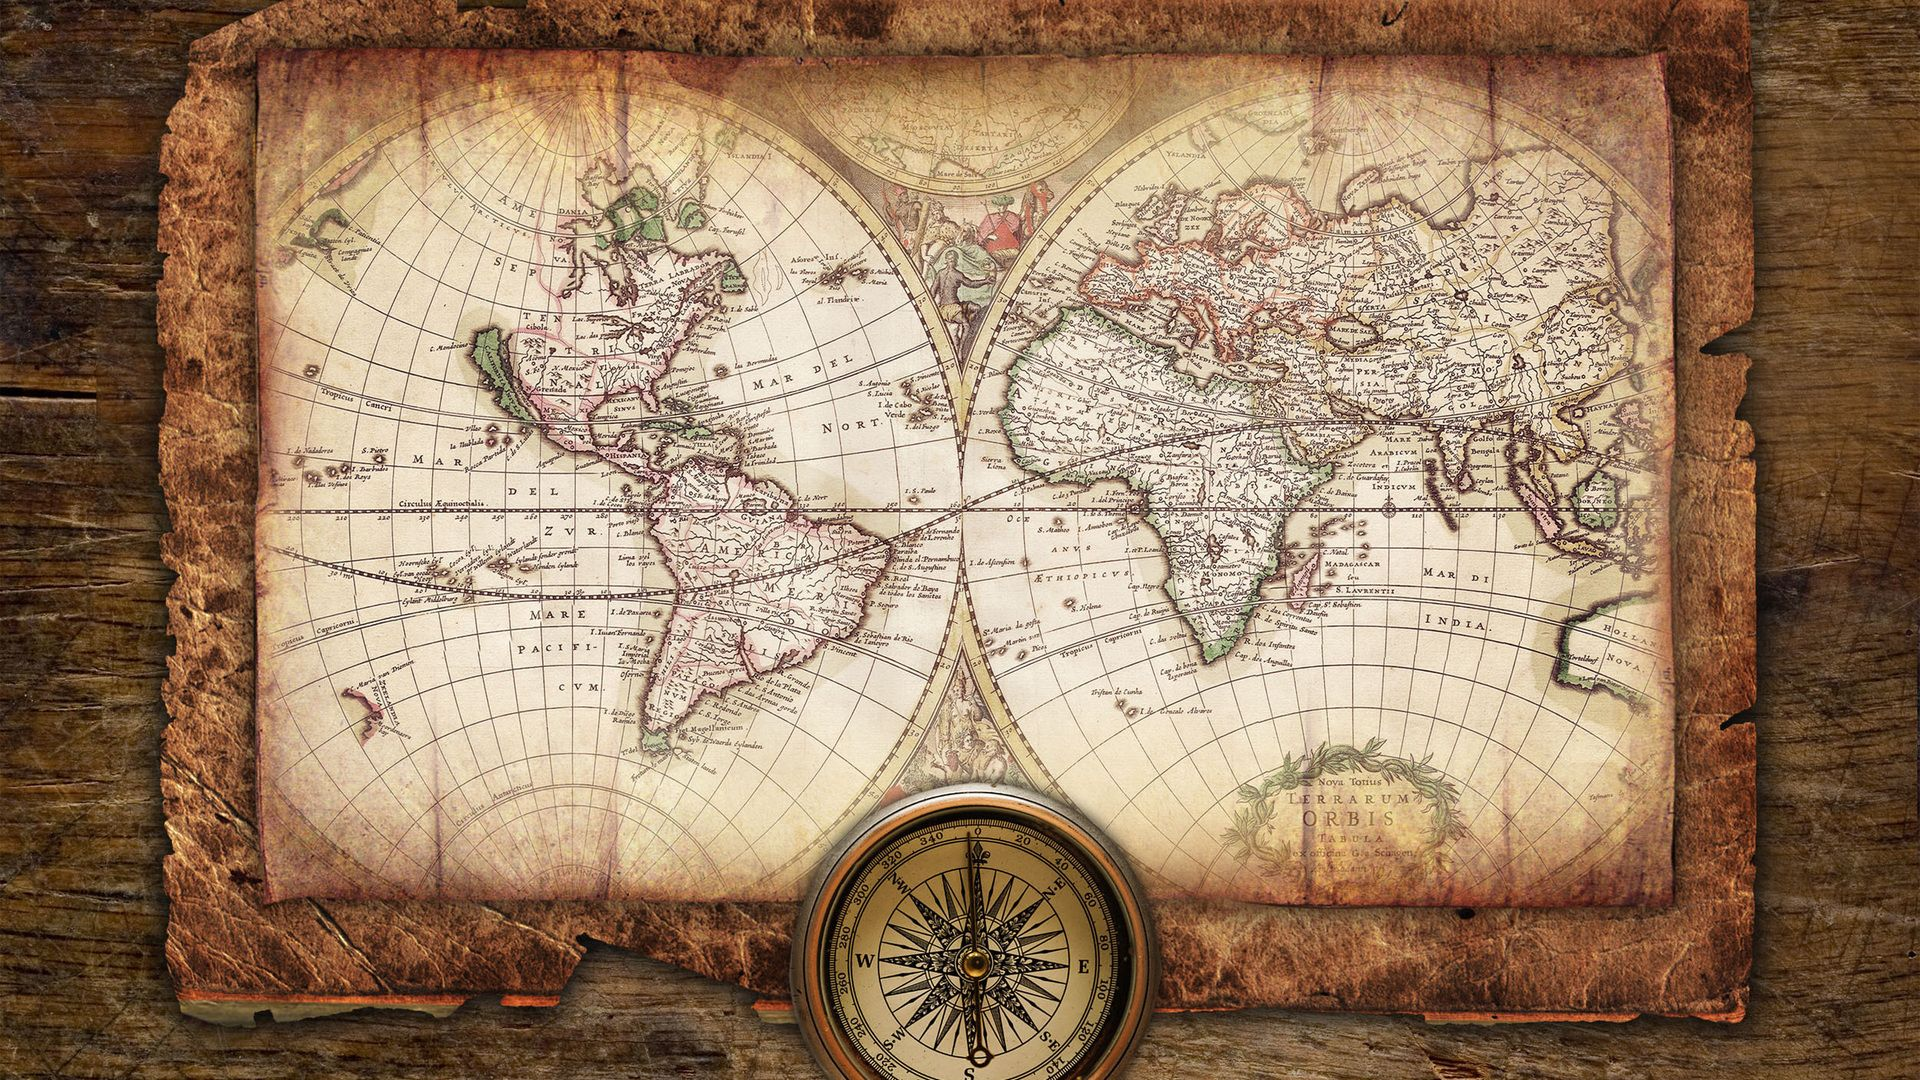 World Map wallpaper for pc